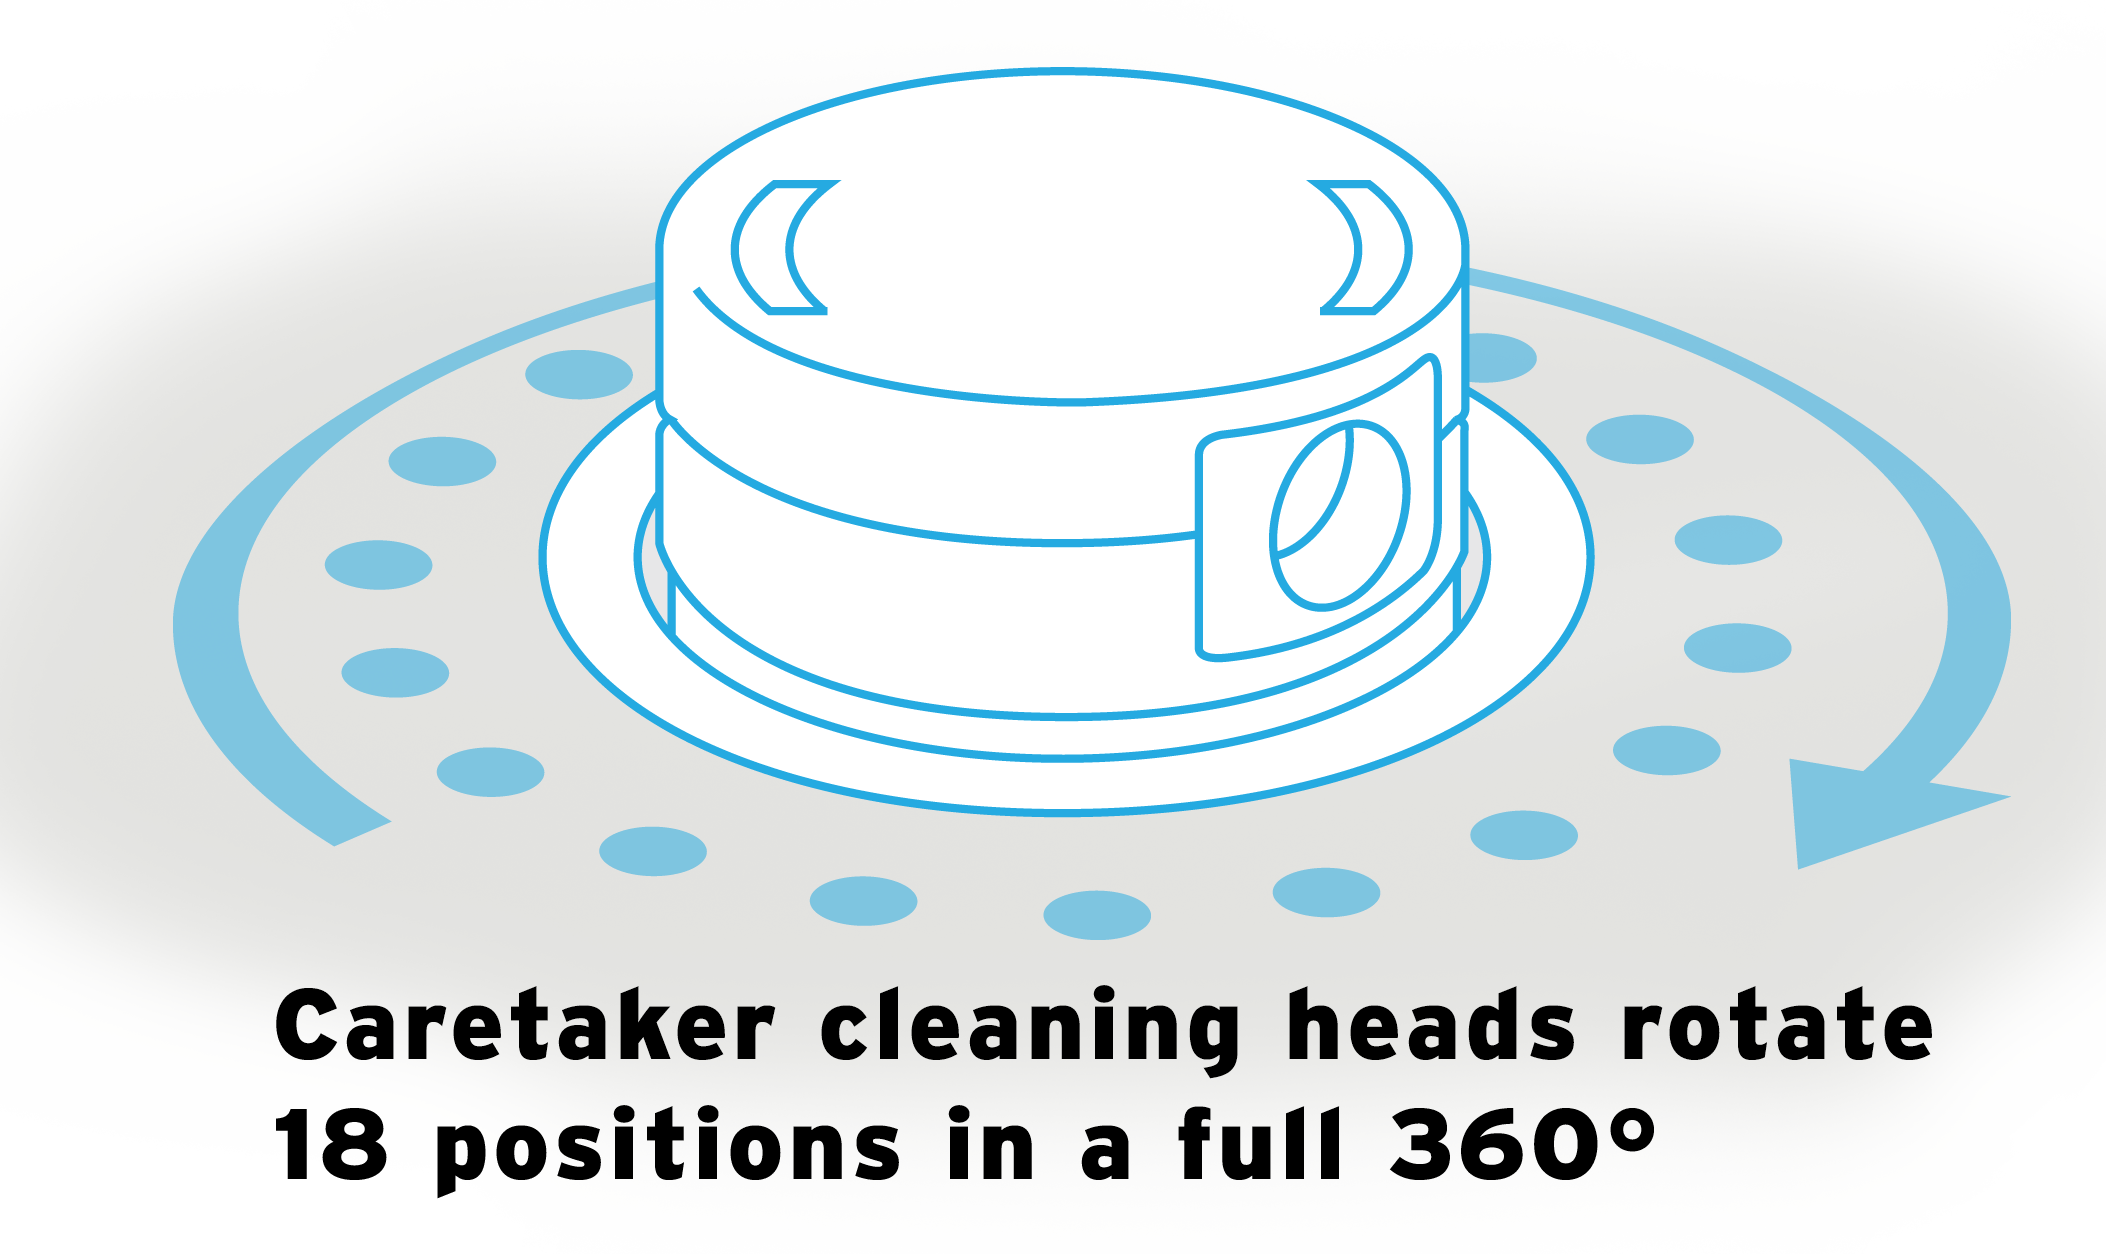 Clean clipart caretaker. Cleaning heads